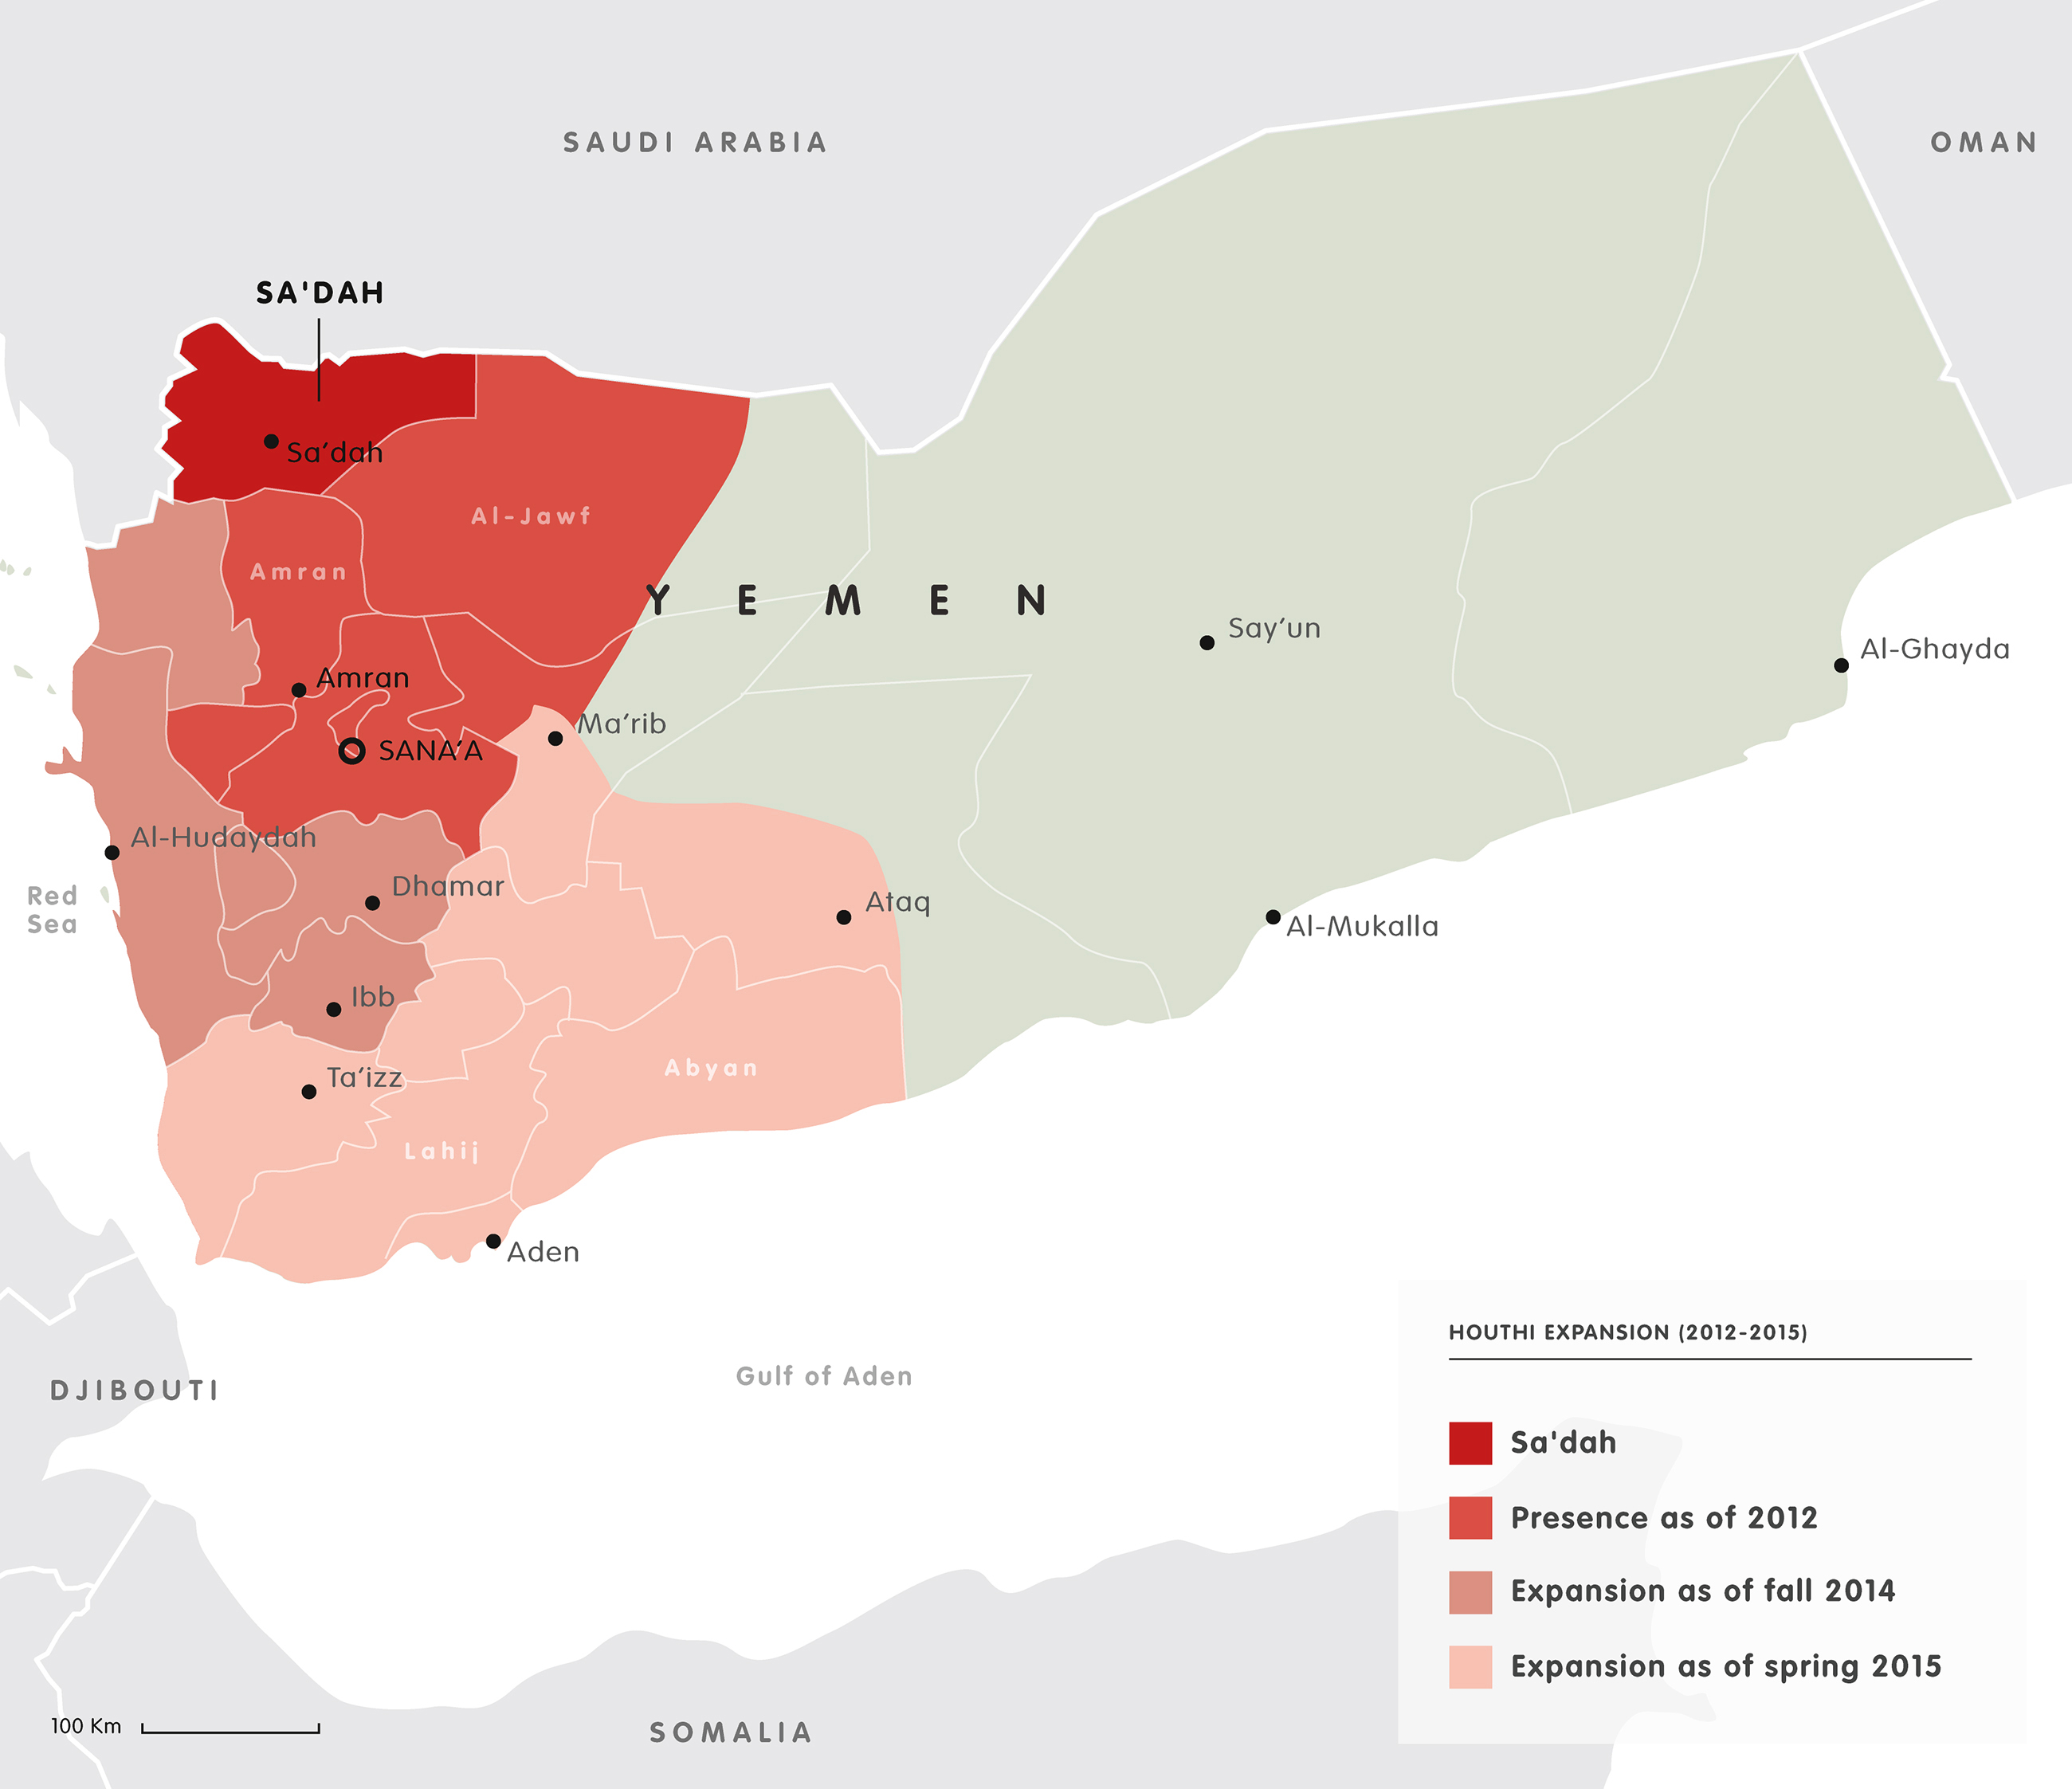 Houthi expansion in Yemen 2012-2015